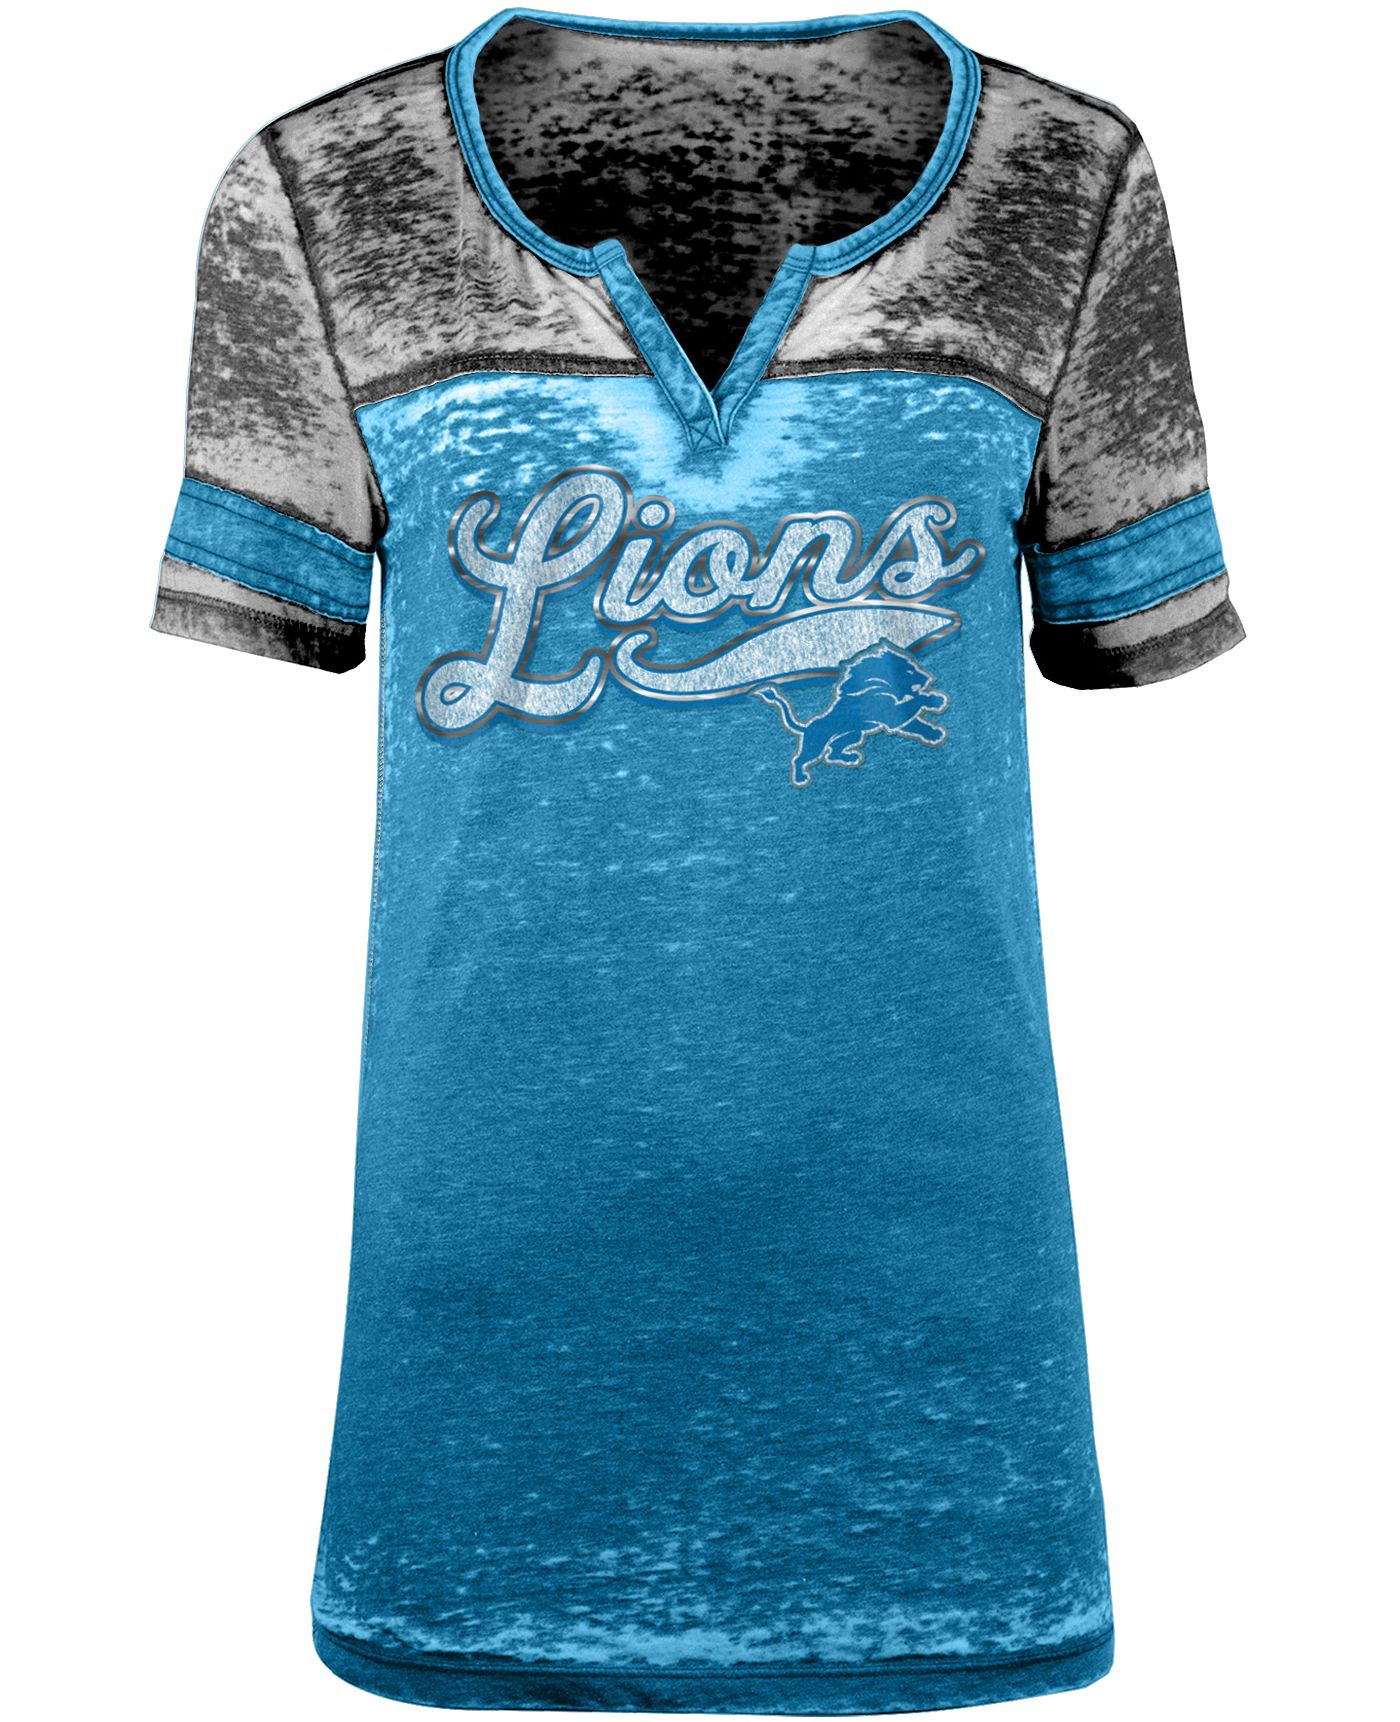 NFL Team Apparel Women's Detroit Lions Foil Burnout Blue T-Shirt